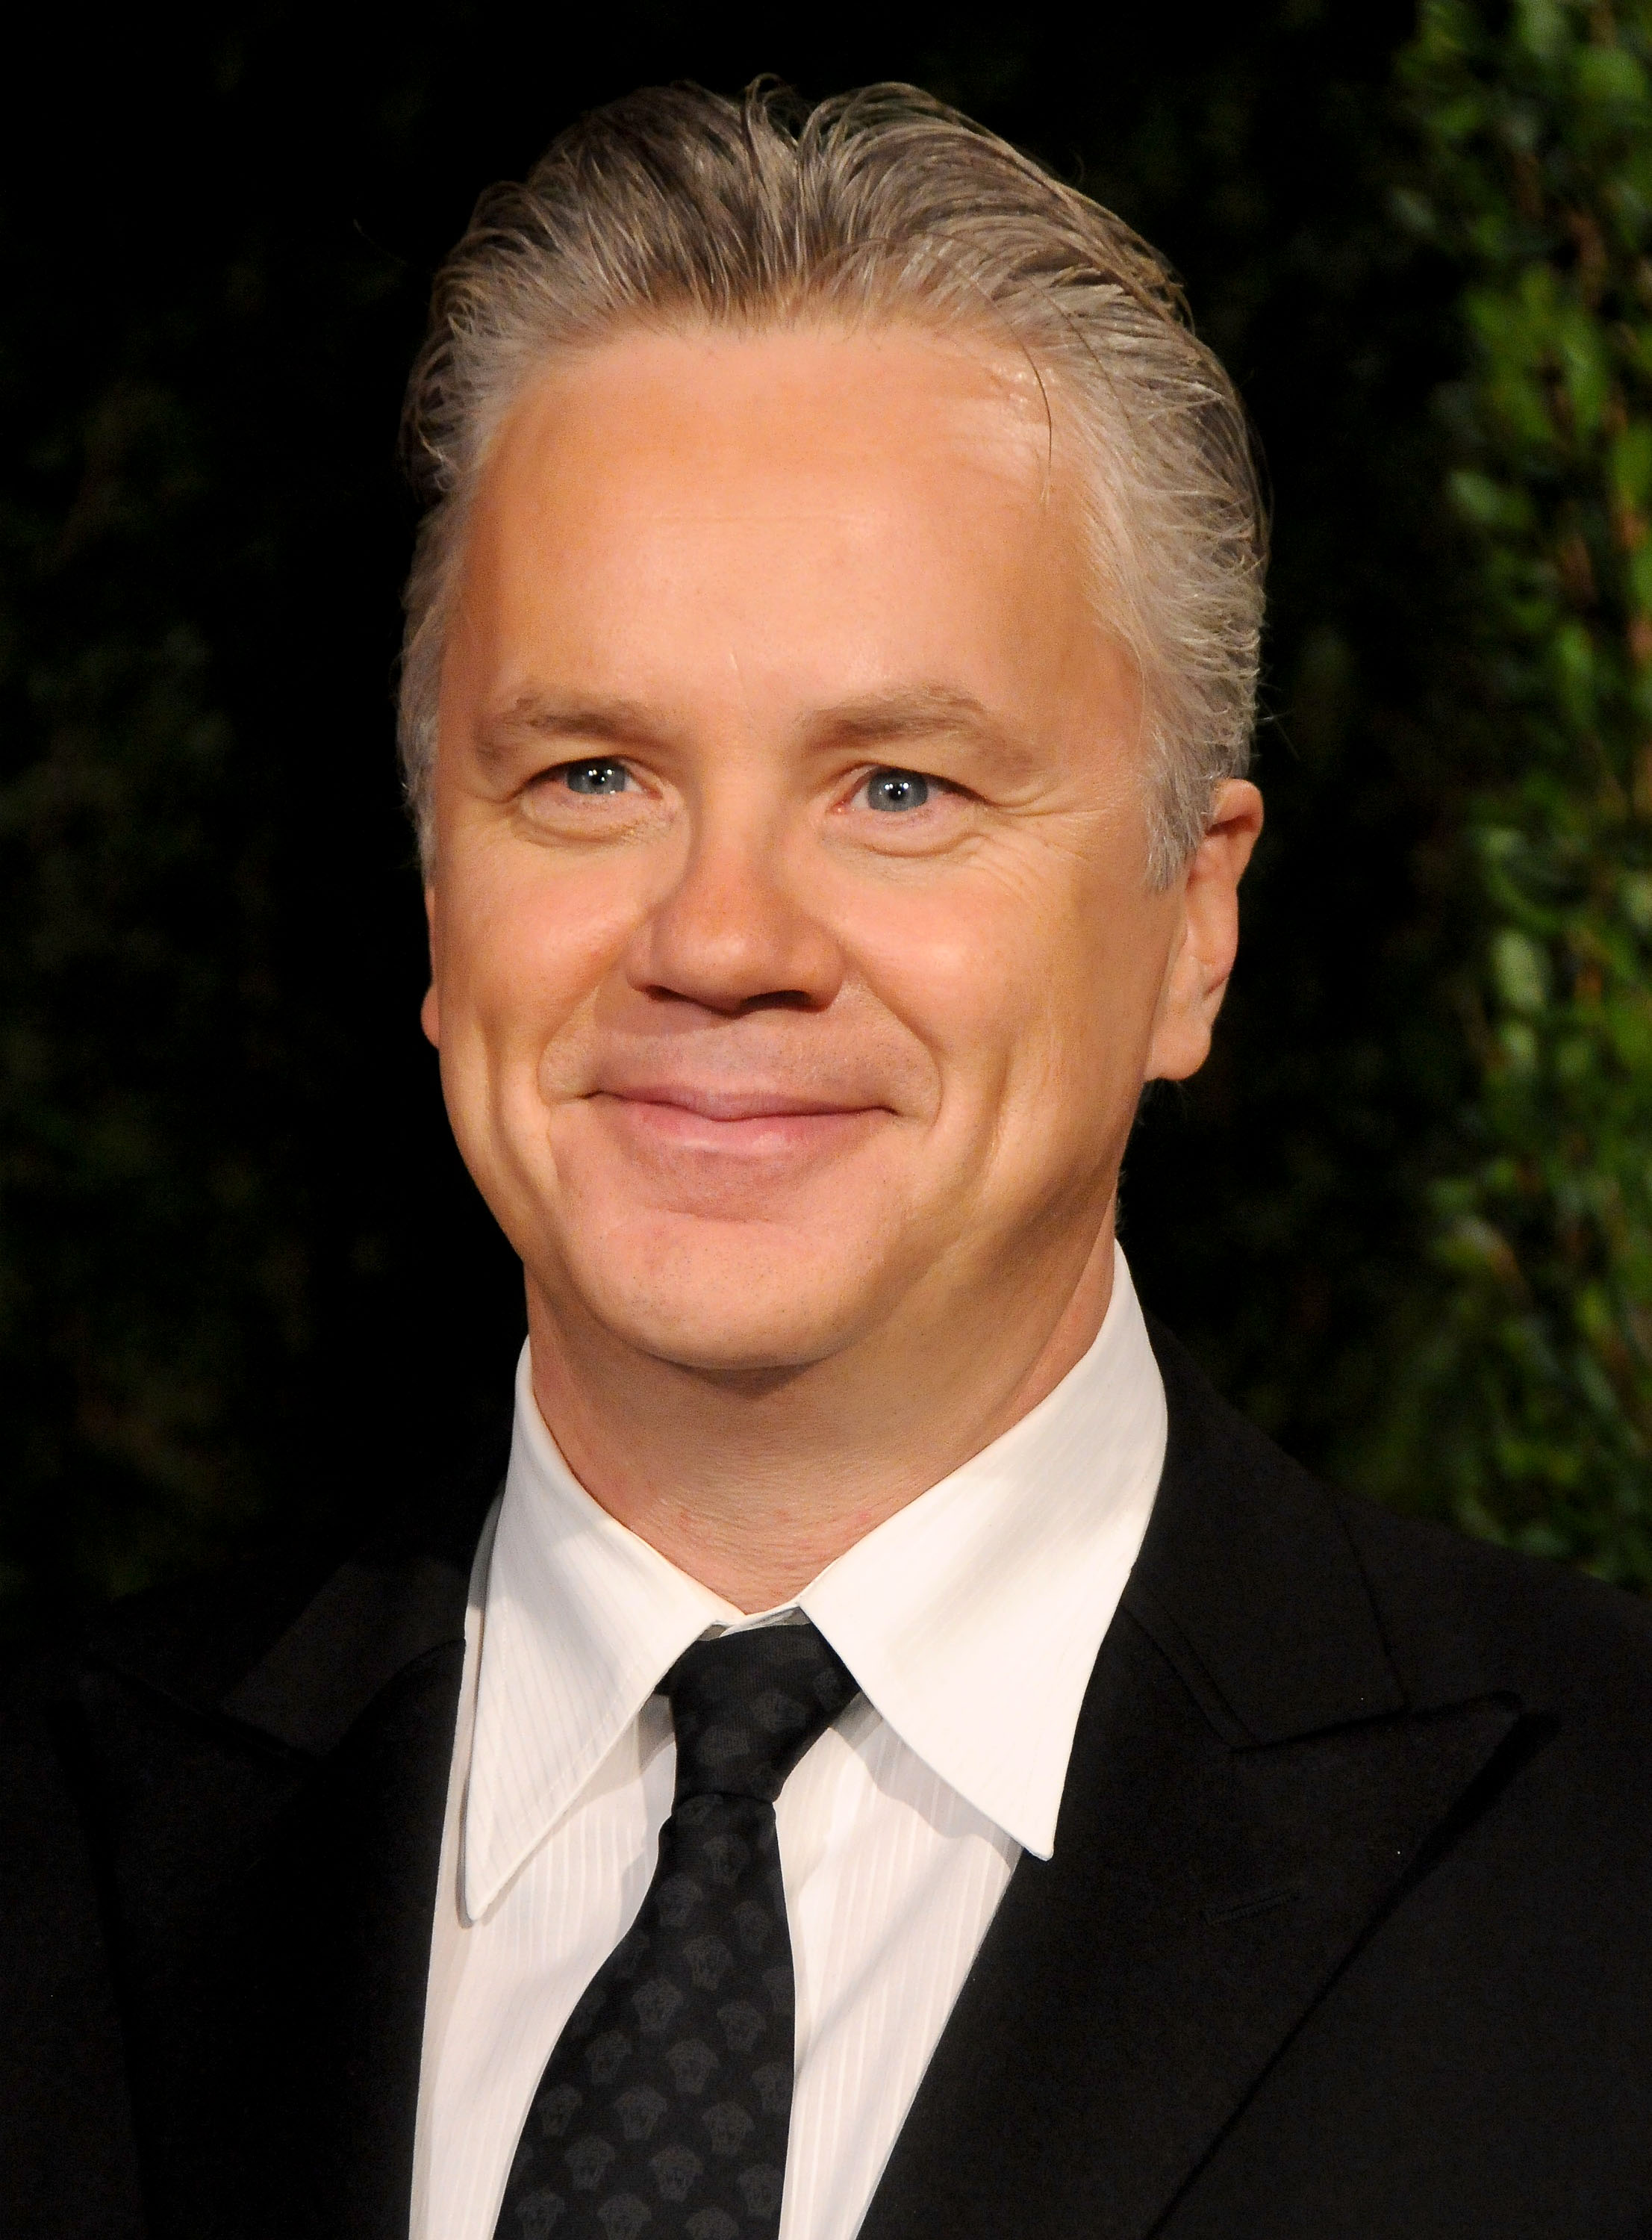 WEST HOLLYWOOD, CA - MARCH 7: Tim Robbins attends the Vanity Fair Oscar Party 2010 held at the Sunset Towers Hotel on March 7, 2010 in West Hollywood, California. (Photo by Gregg DeGuire/PictureGroup)